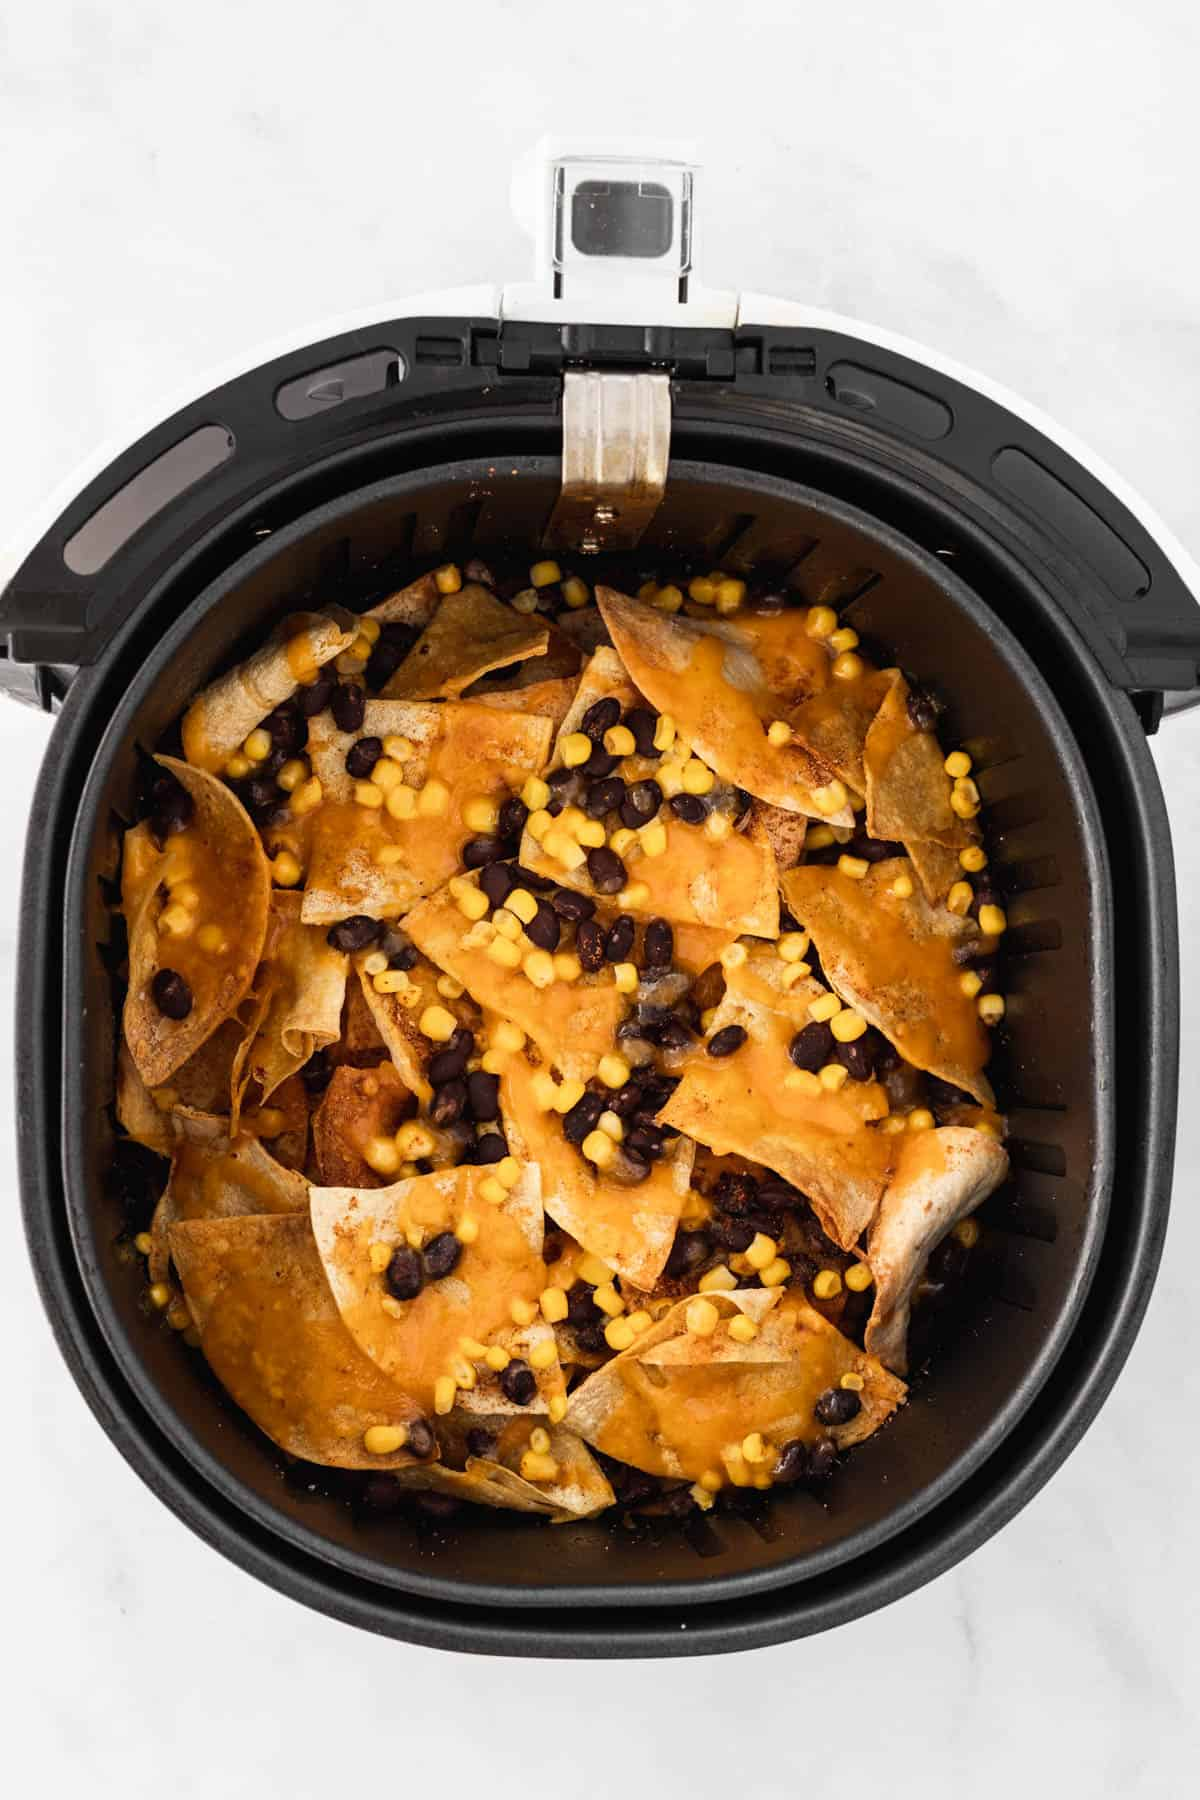 Melted cheese on top of layered tortilla chips, black beans, and corn in an air fryer basket.